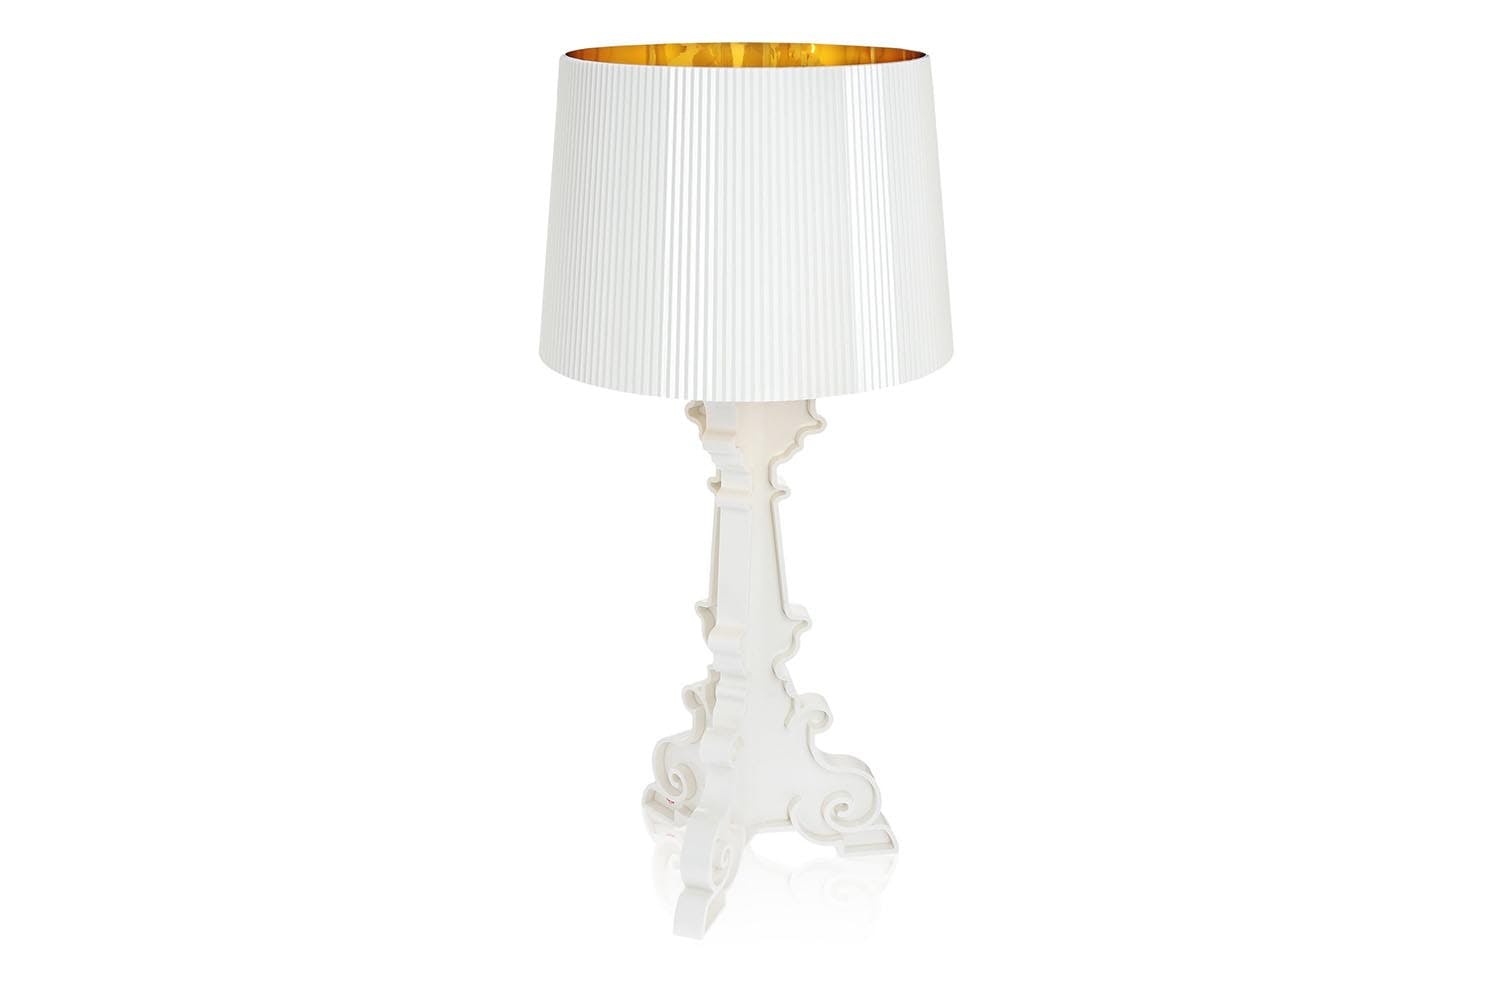 Bourgie white gold table lamp by ferruccio laviani for for Ferruccio laviani bourgie lamp